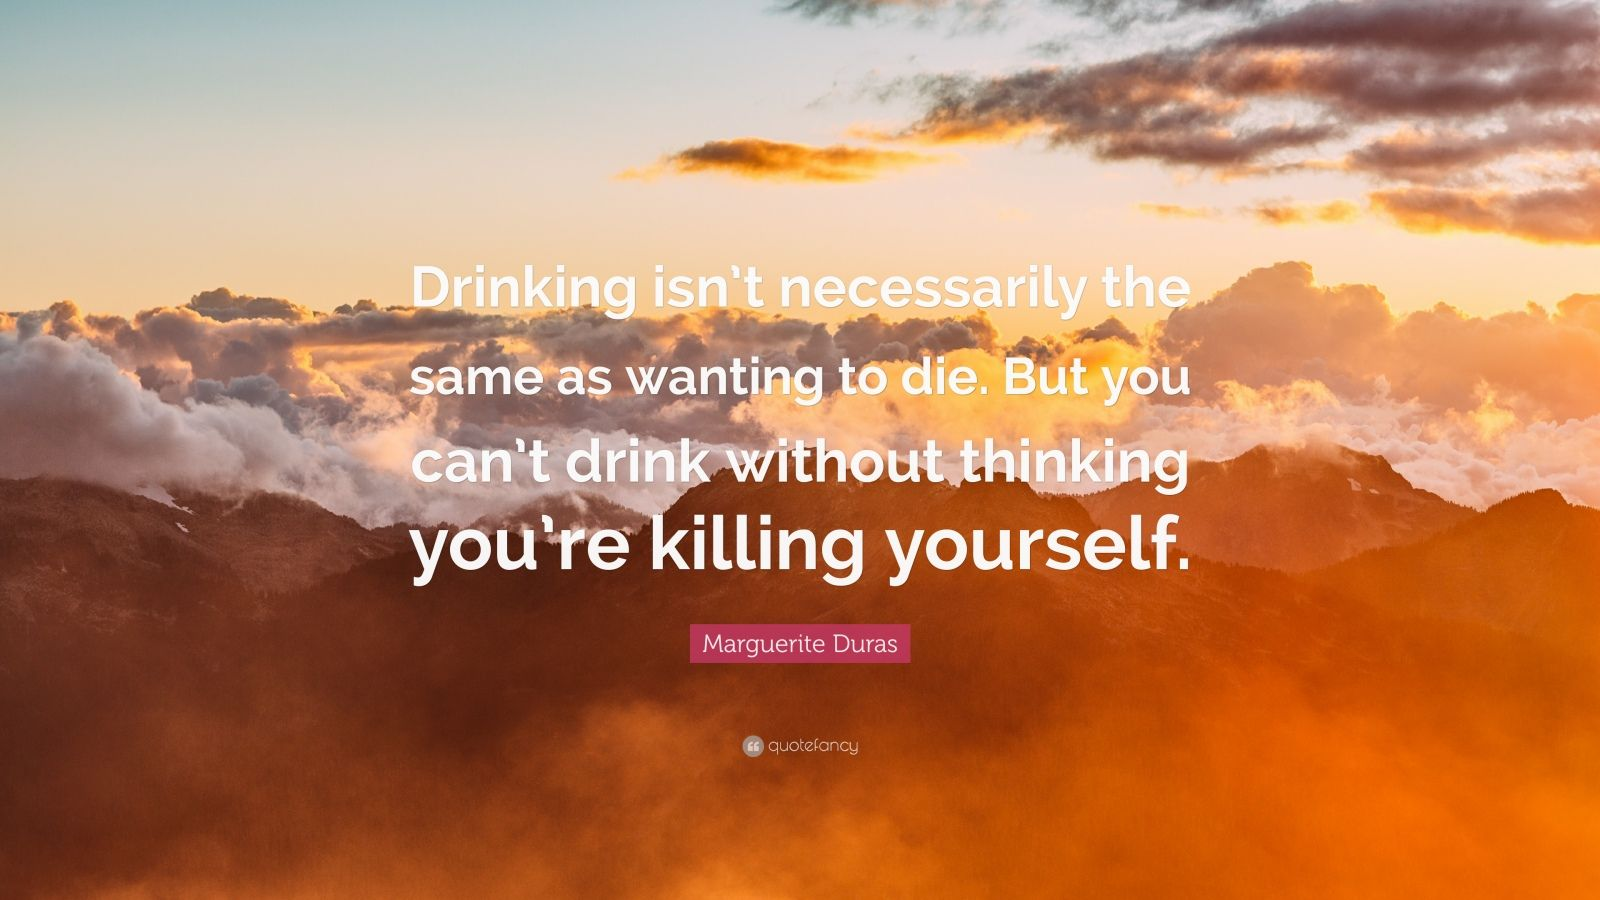 """Marguerite Duras Quote: """"Drinking isn't necessarily the same as wanting to die. But you can't drink without thinking you're killing yourself."""""""